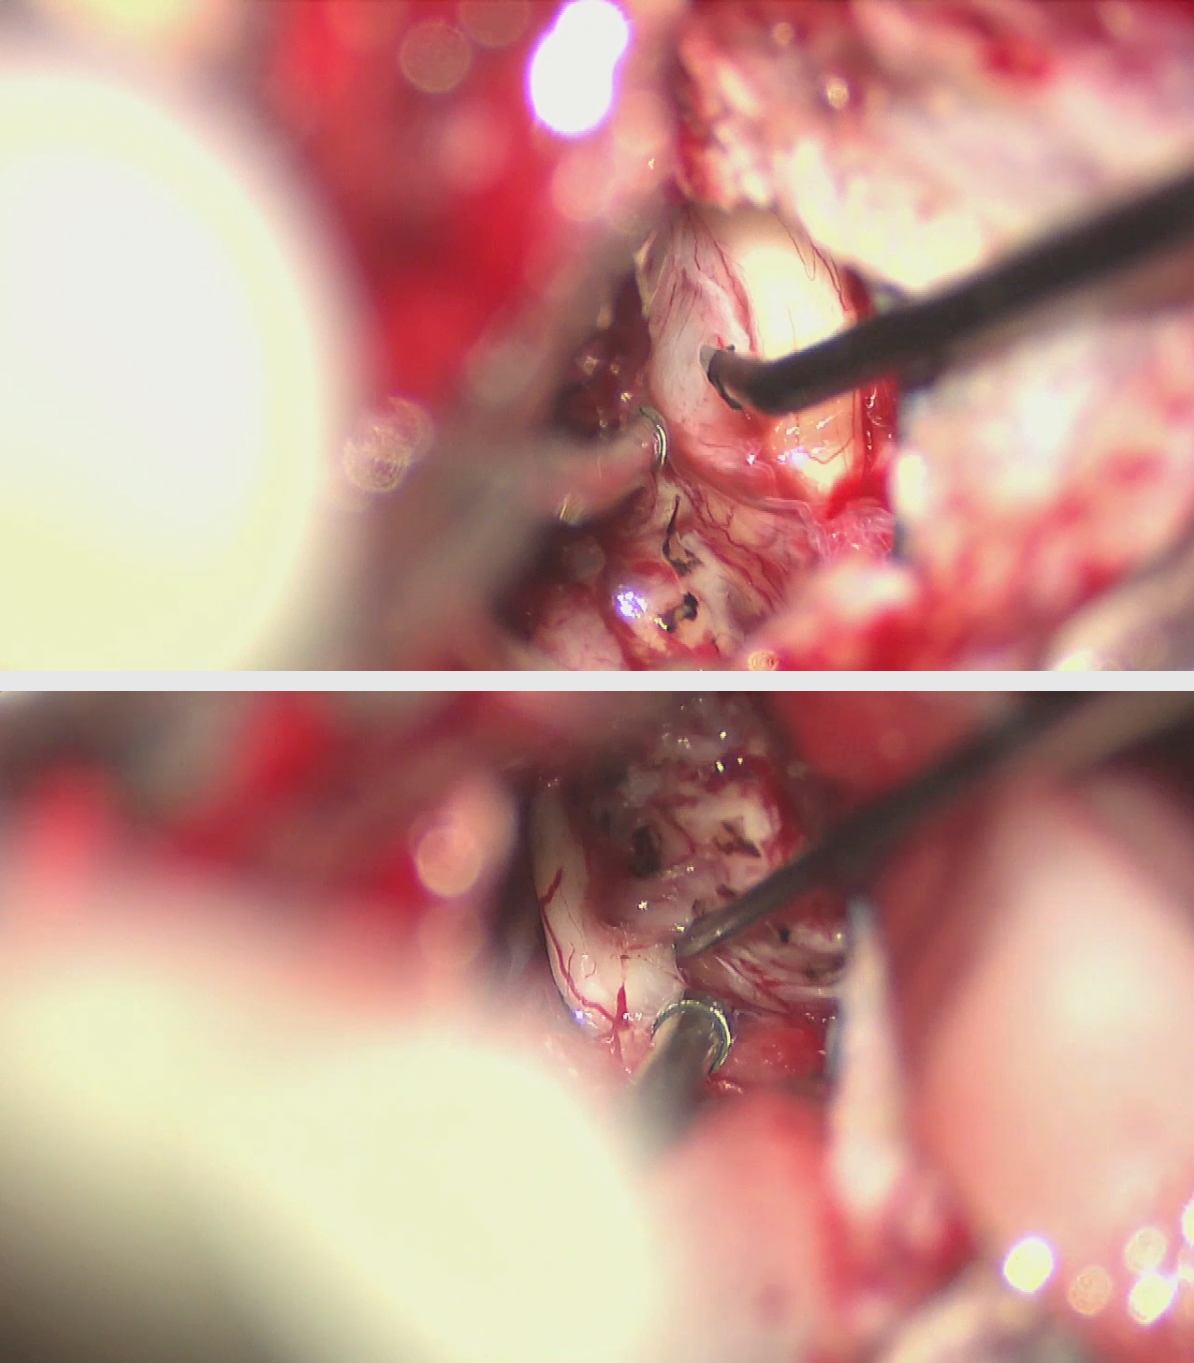 Figure 13: The trigeminal nerve is identified and carefully released from the superior pole of the tumor capsule (top image). The cochlear nerve at the lower pole of the capsule is stimulated (bottom image) and transected in patients with larger tumors and nonserviceable hearing.